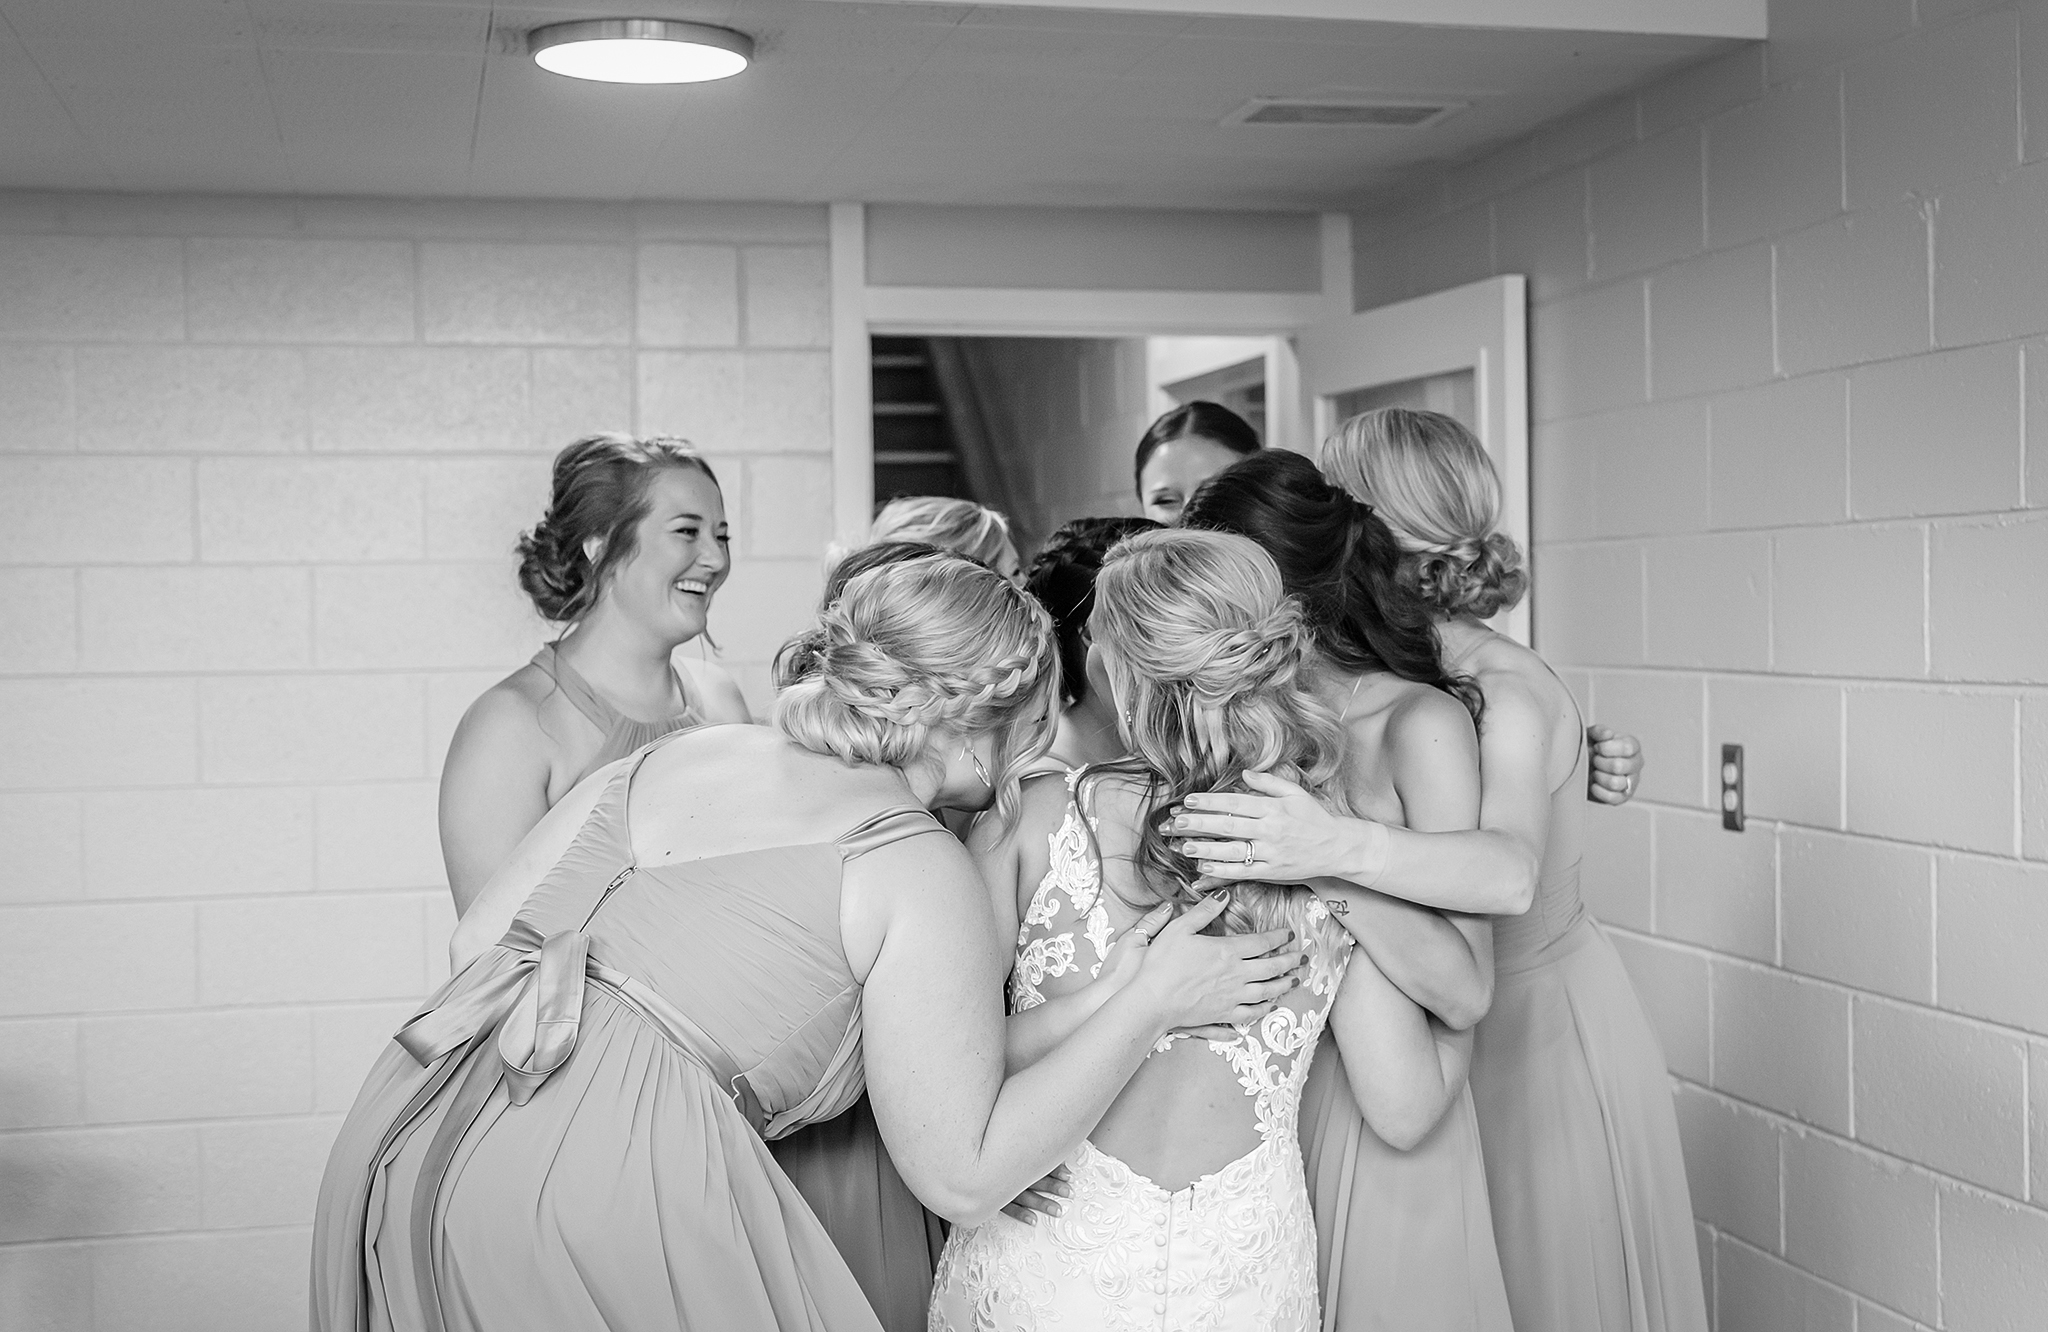 Lindsay-Adkins-Photography-Michigan-Wedding-Photographer-Tecumseh-Michigan-11b